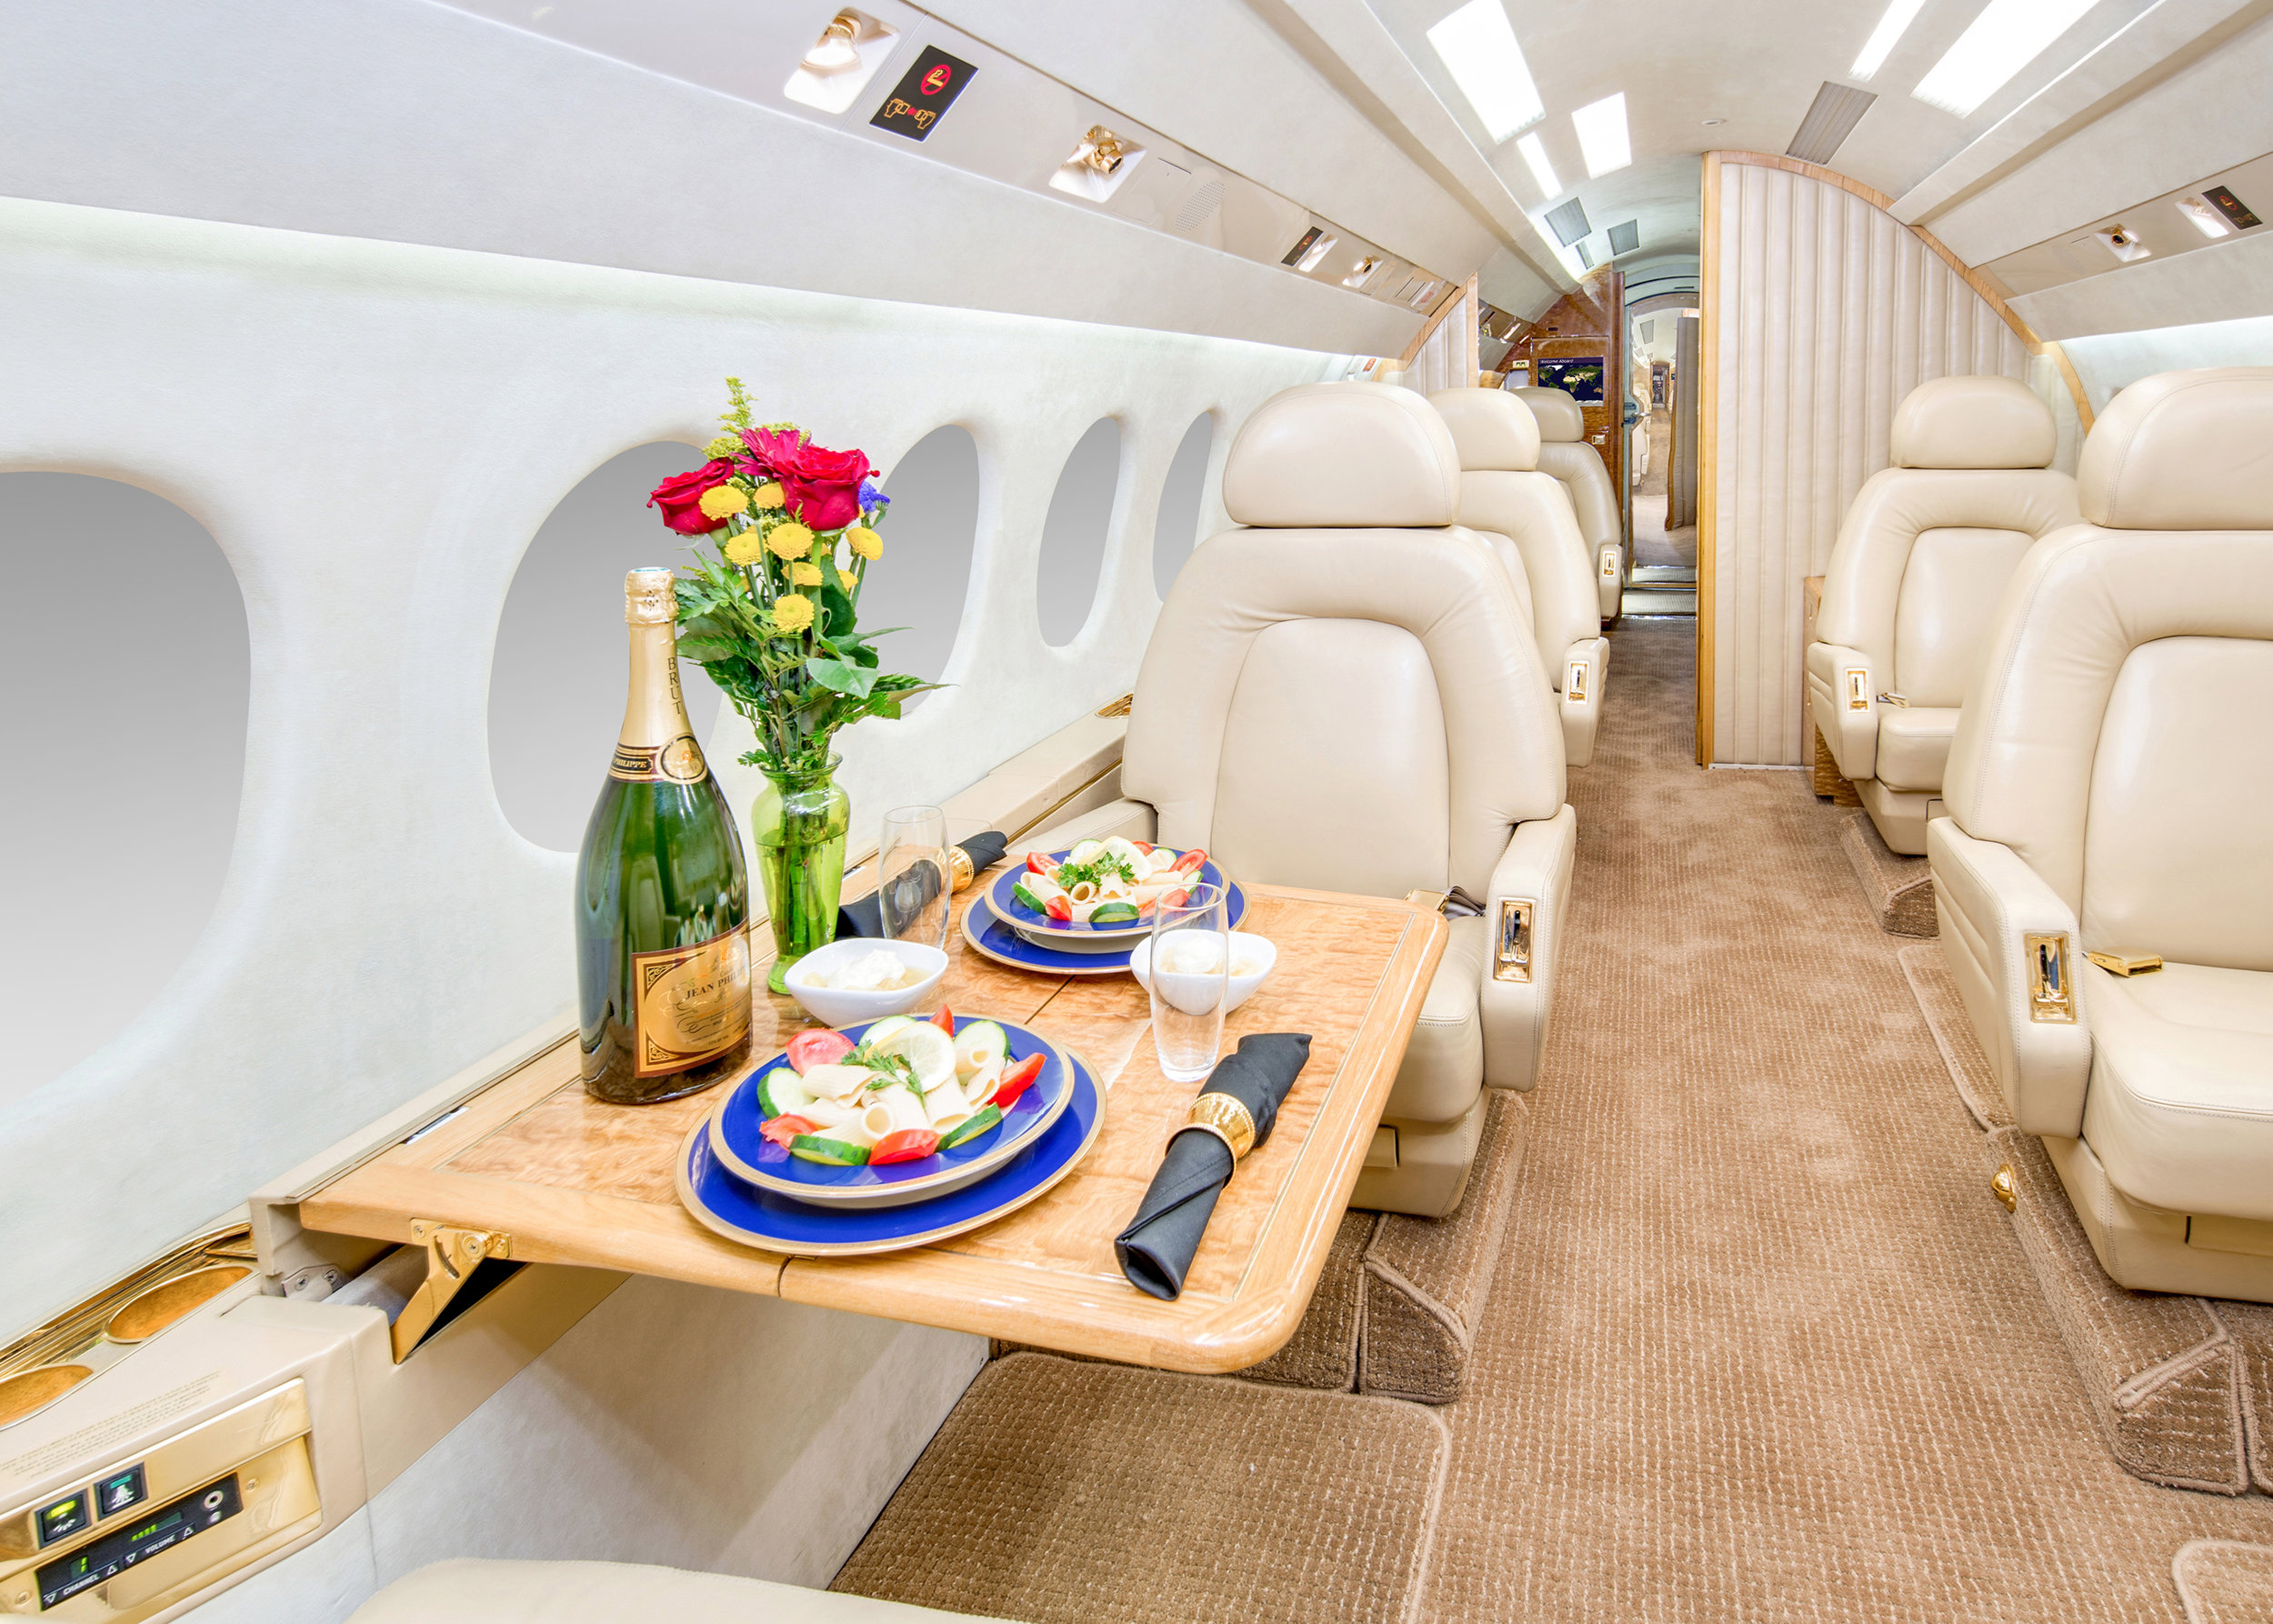 fwd cabin facing aft place setting.jpg